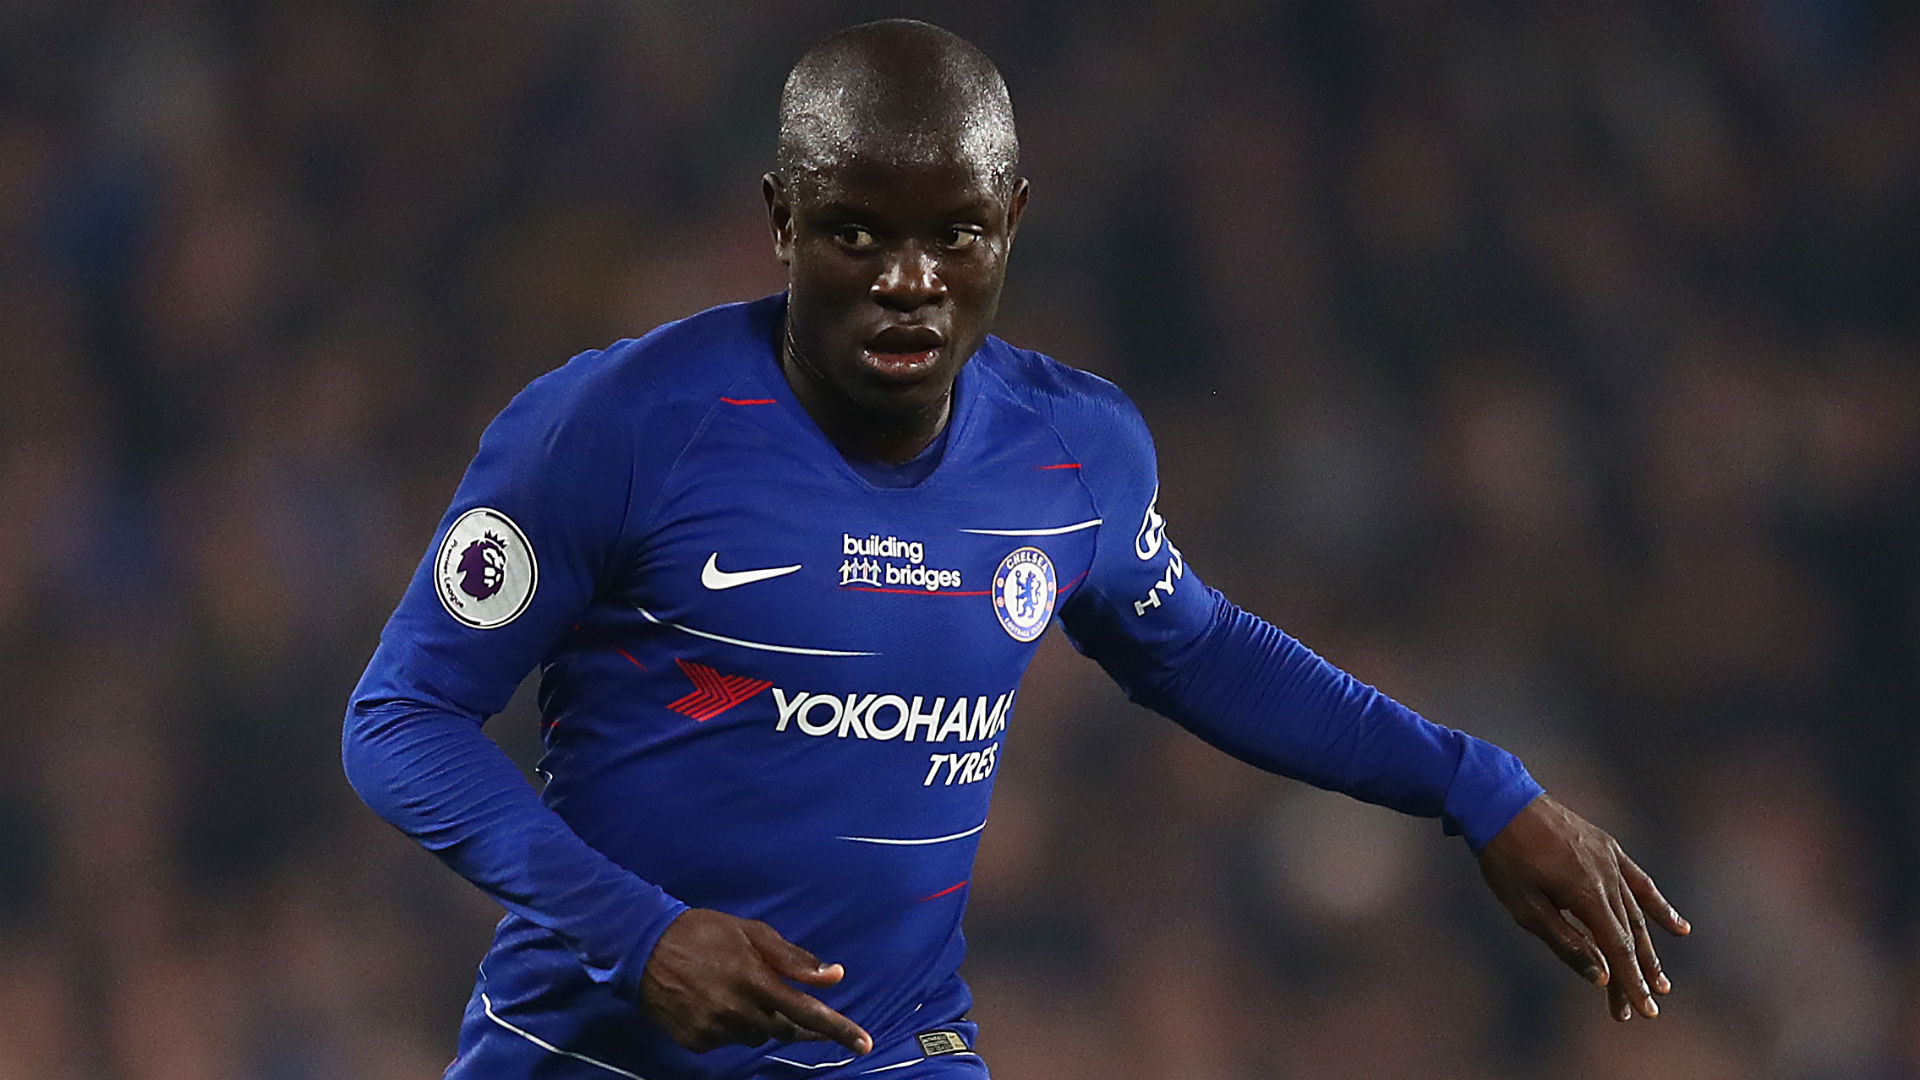 Chelsea boss Lampard optimistic Kante will be ready for Premier League opener against Man Utd